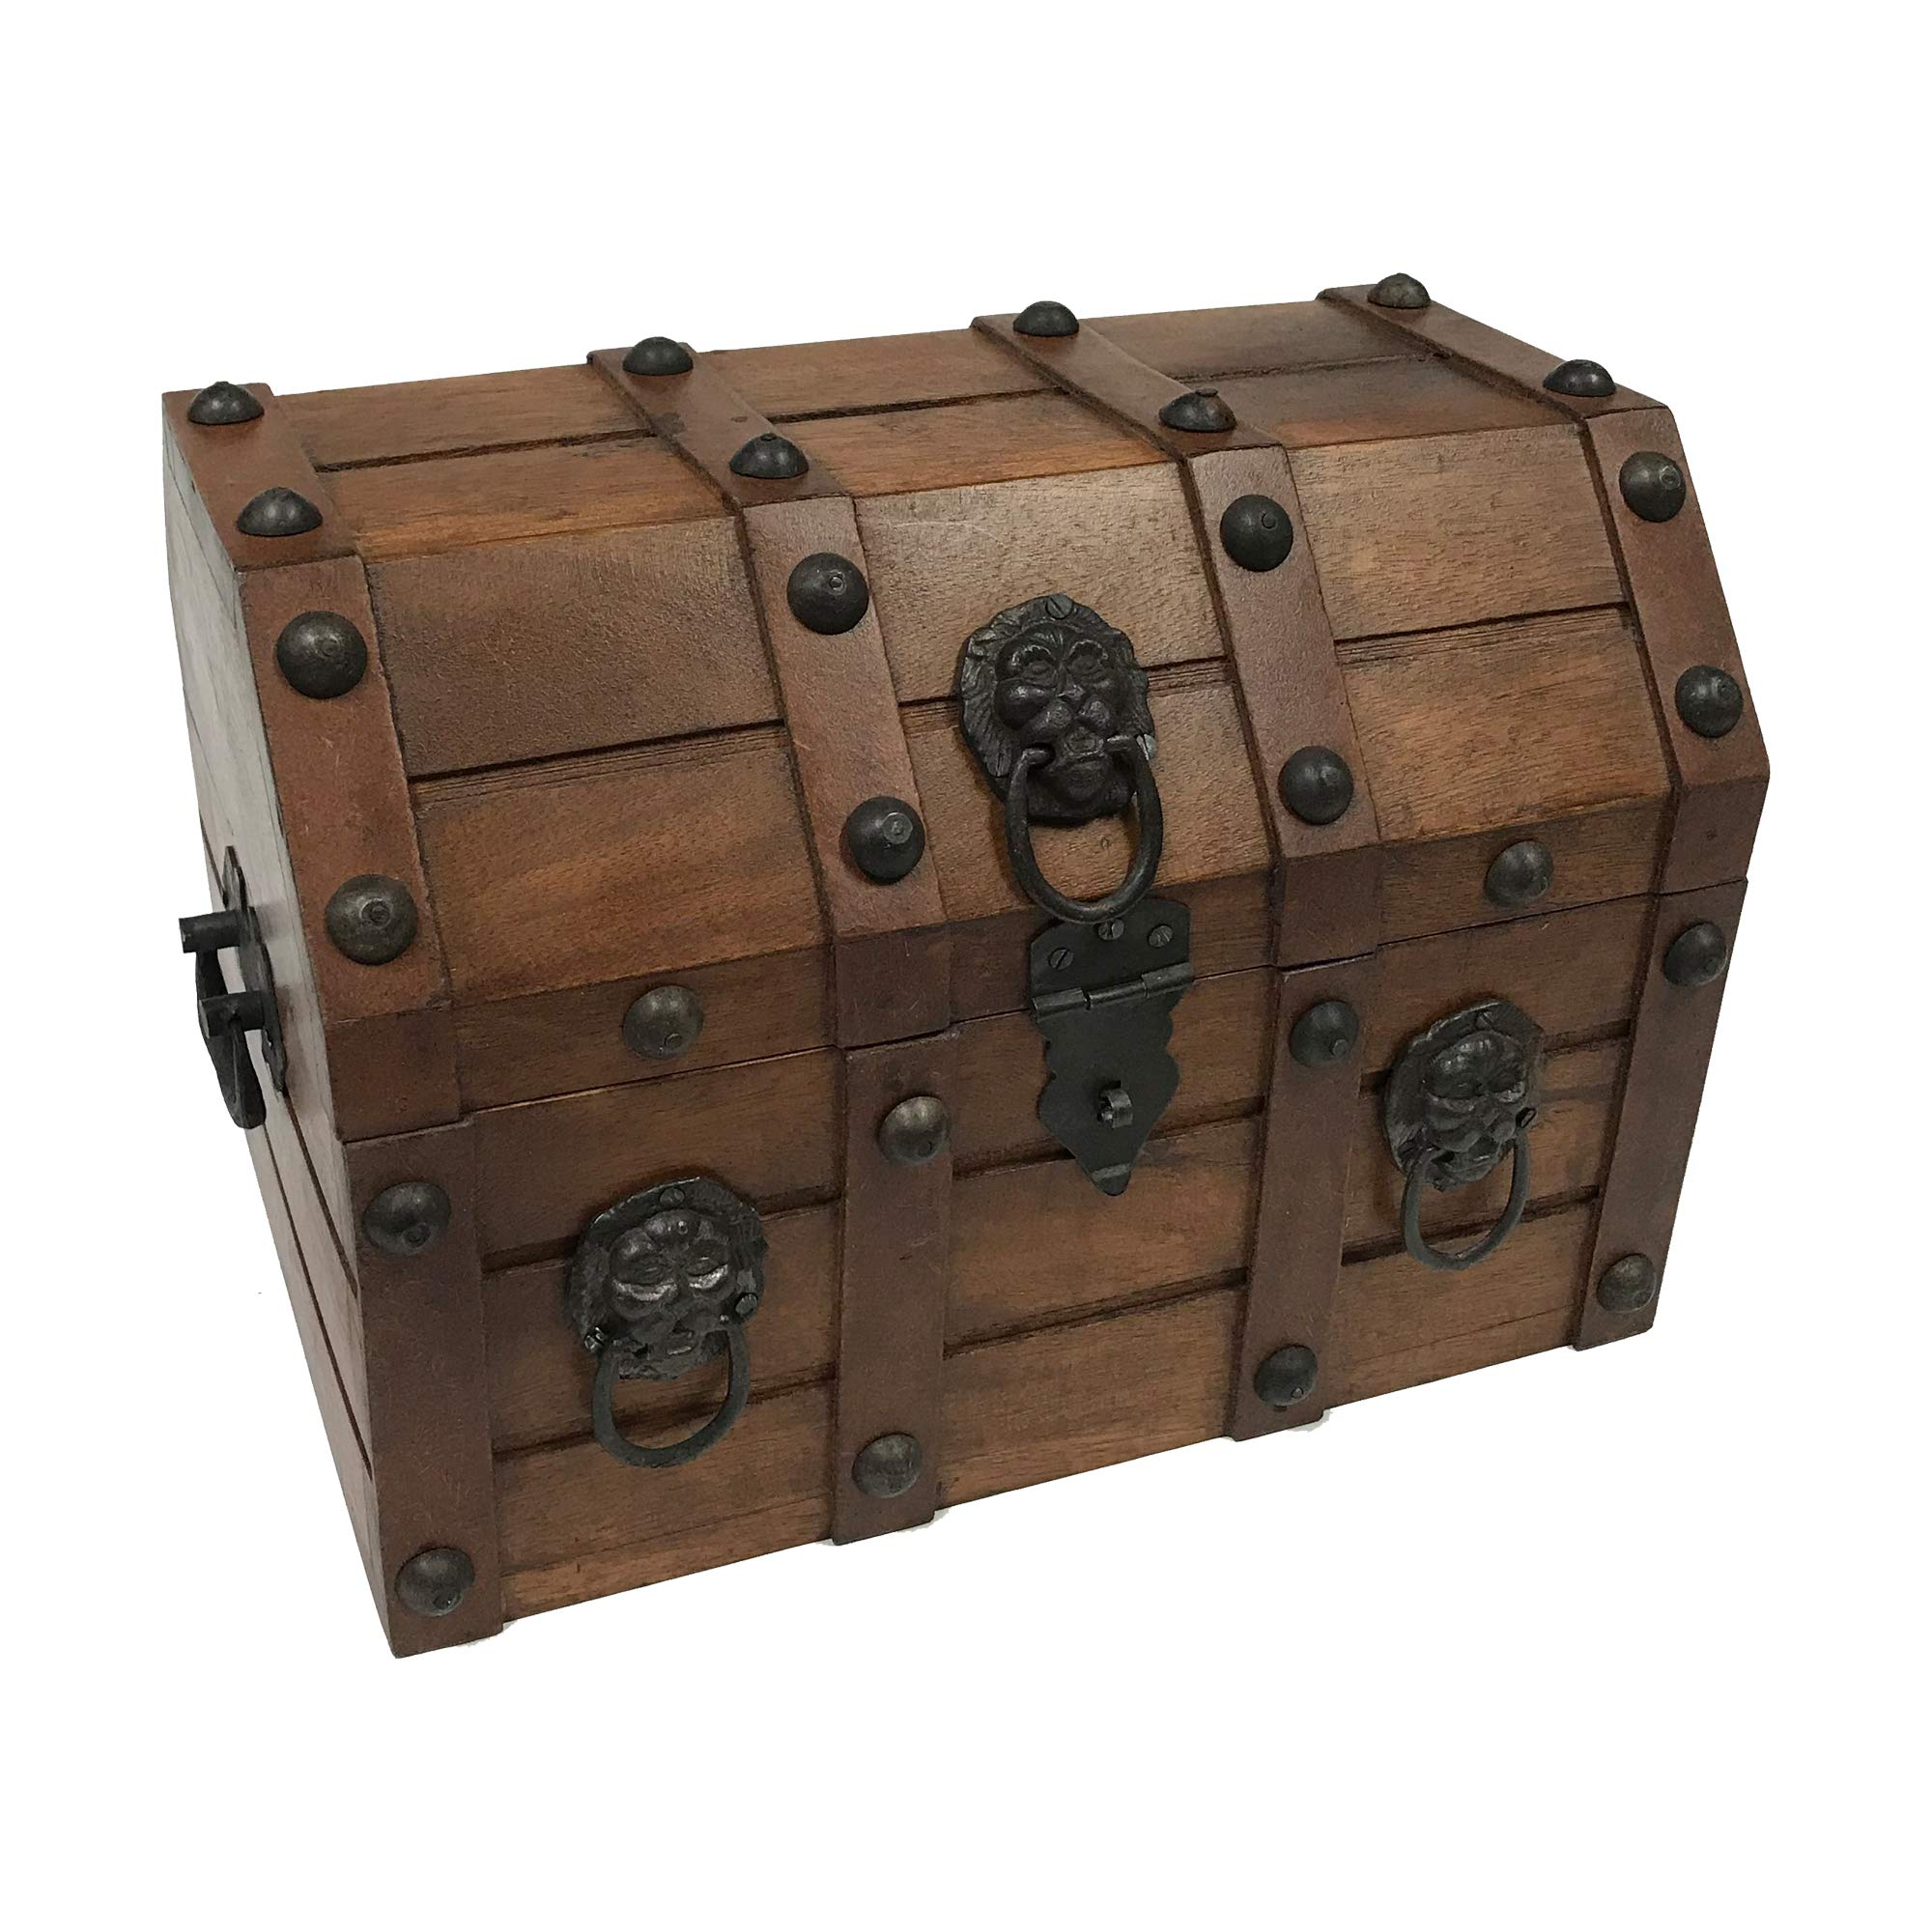 Authentic Pirate Loot Chest Antique Reproduction in Mango & Teak Wood by Schooner Bay Co.